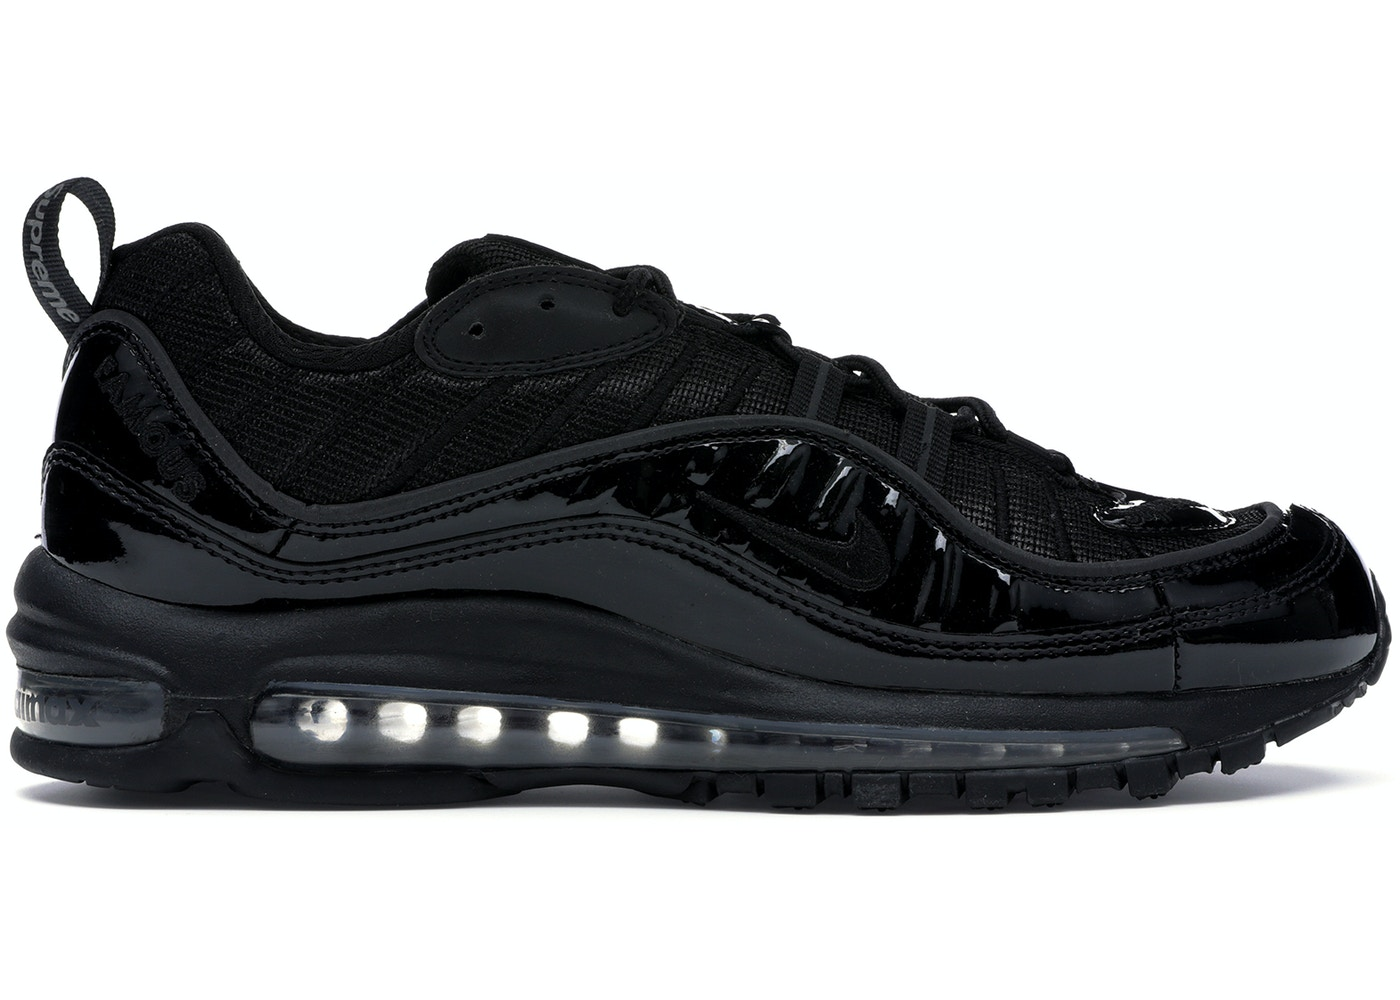 6b8693f2b99a Buy Nike Air Max Shoes   Deadstock Sneakers